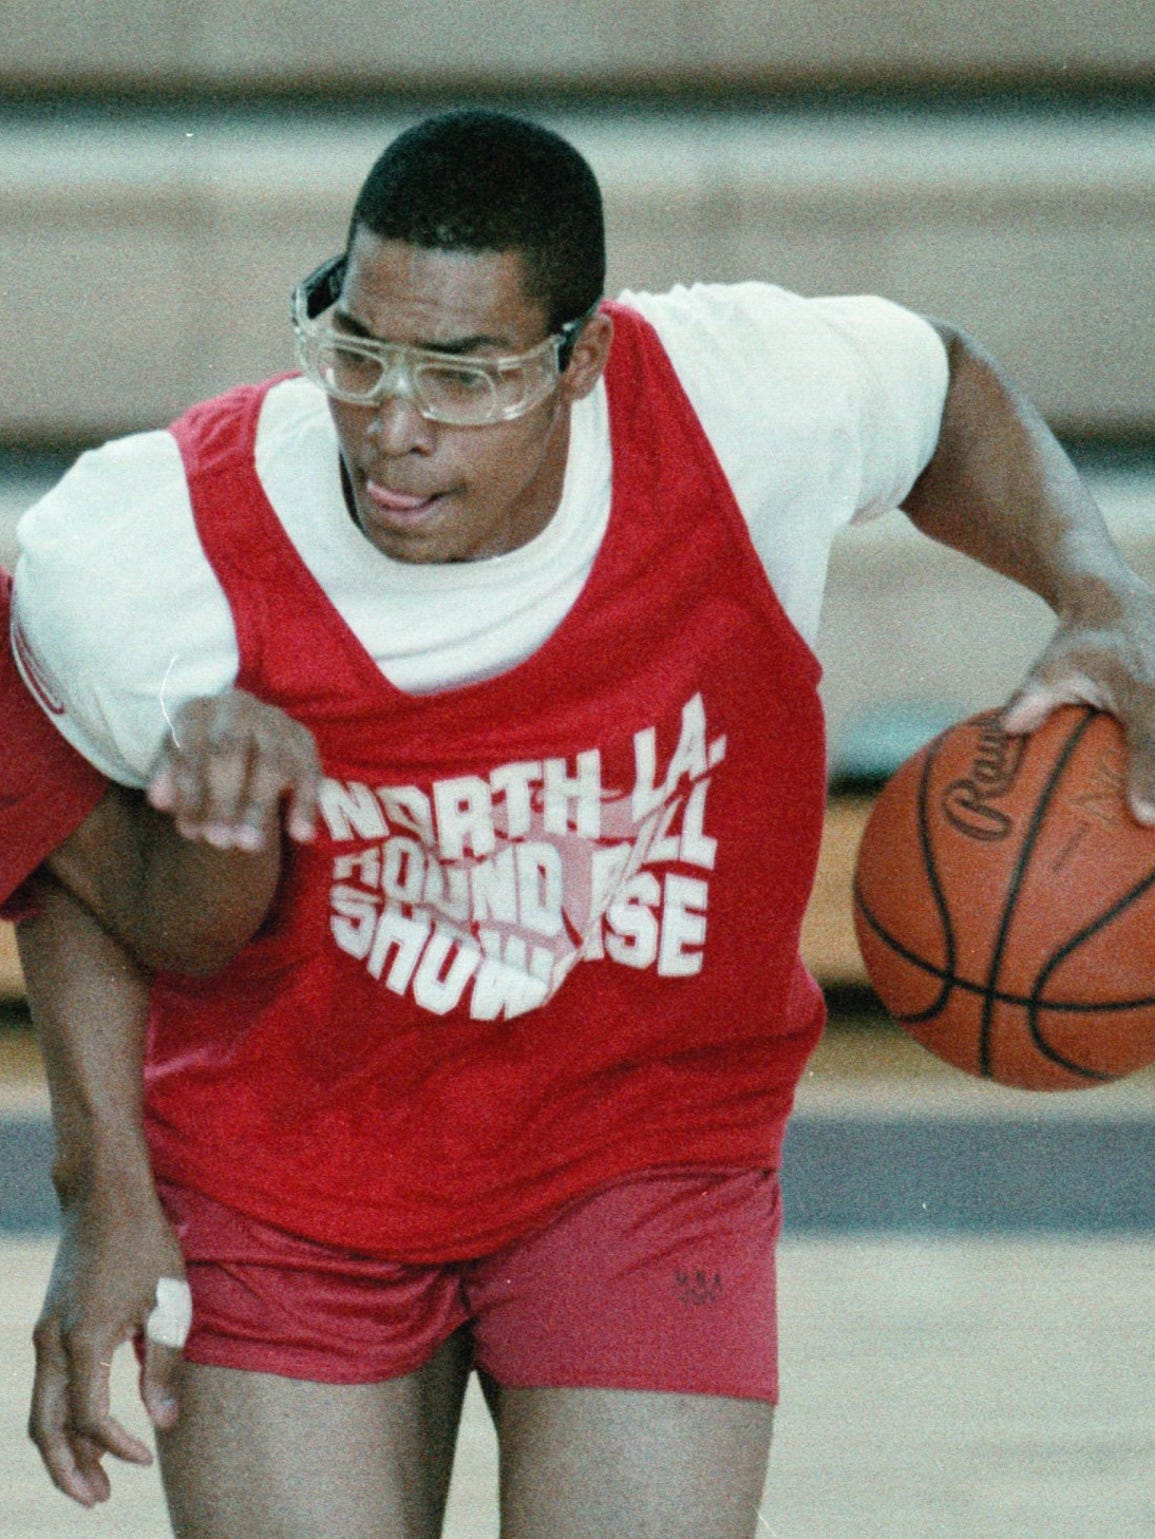 Marcus Fizer was an All-American high school player